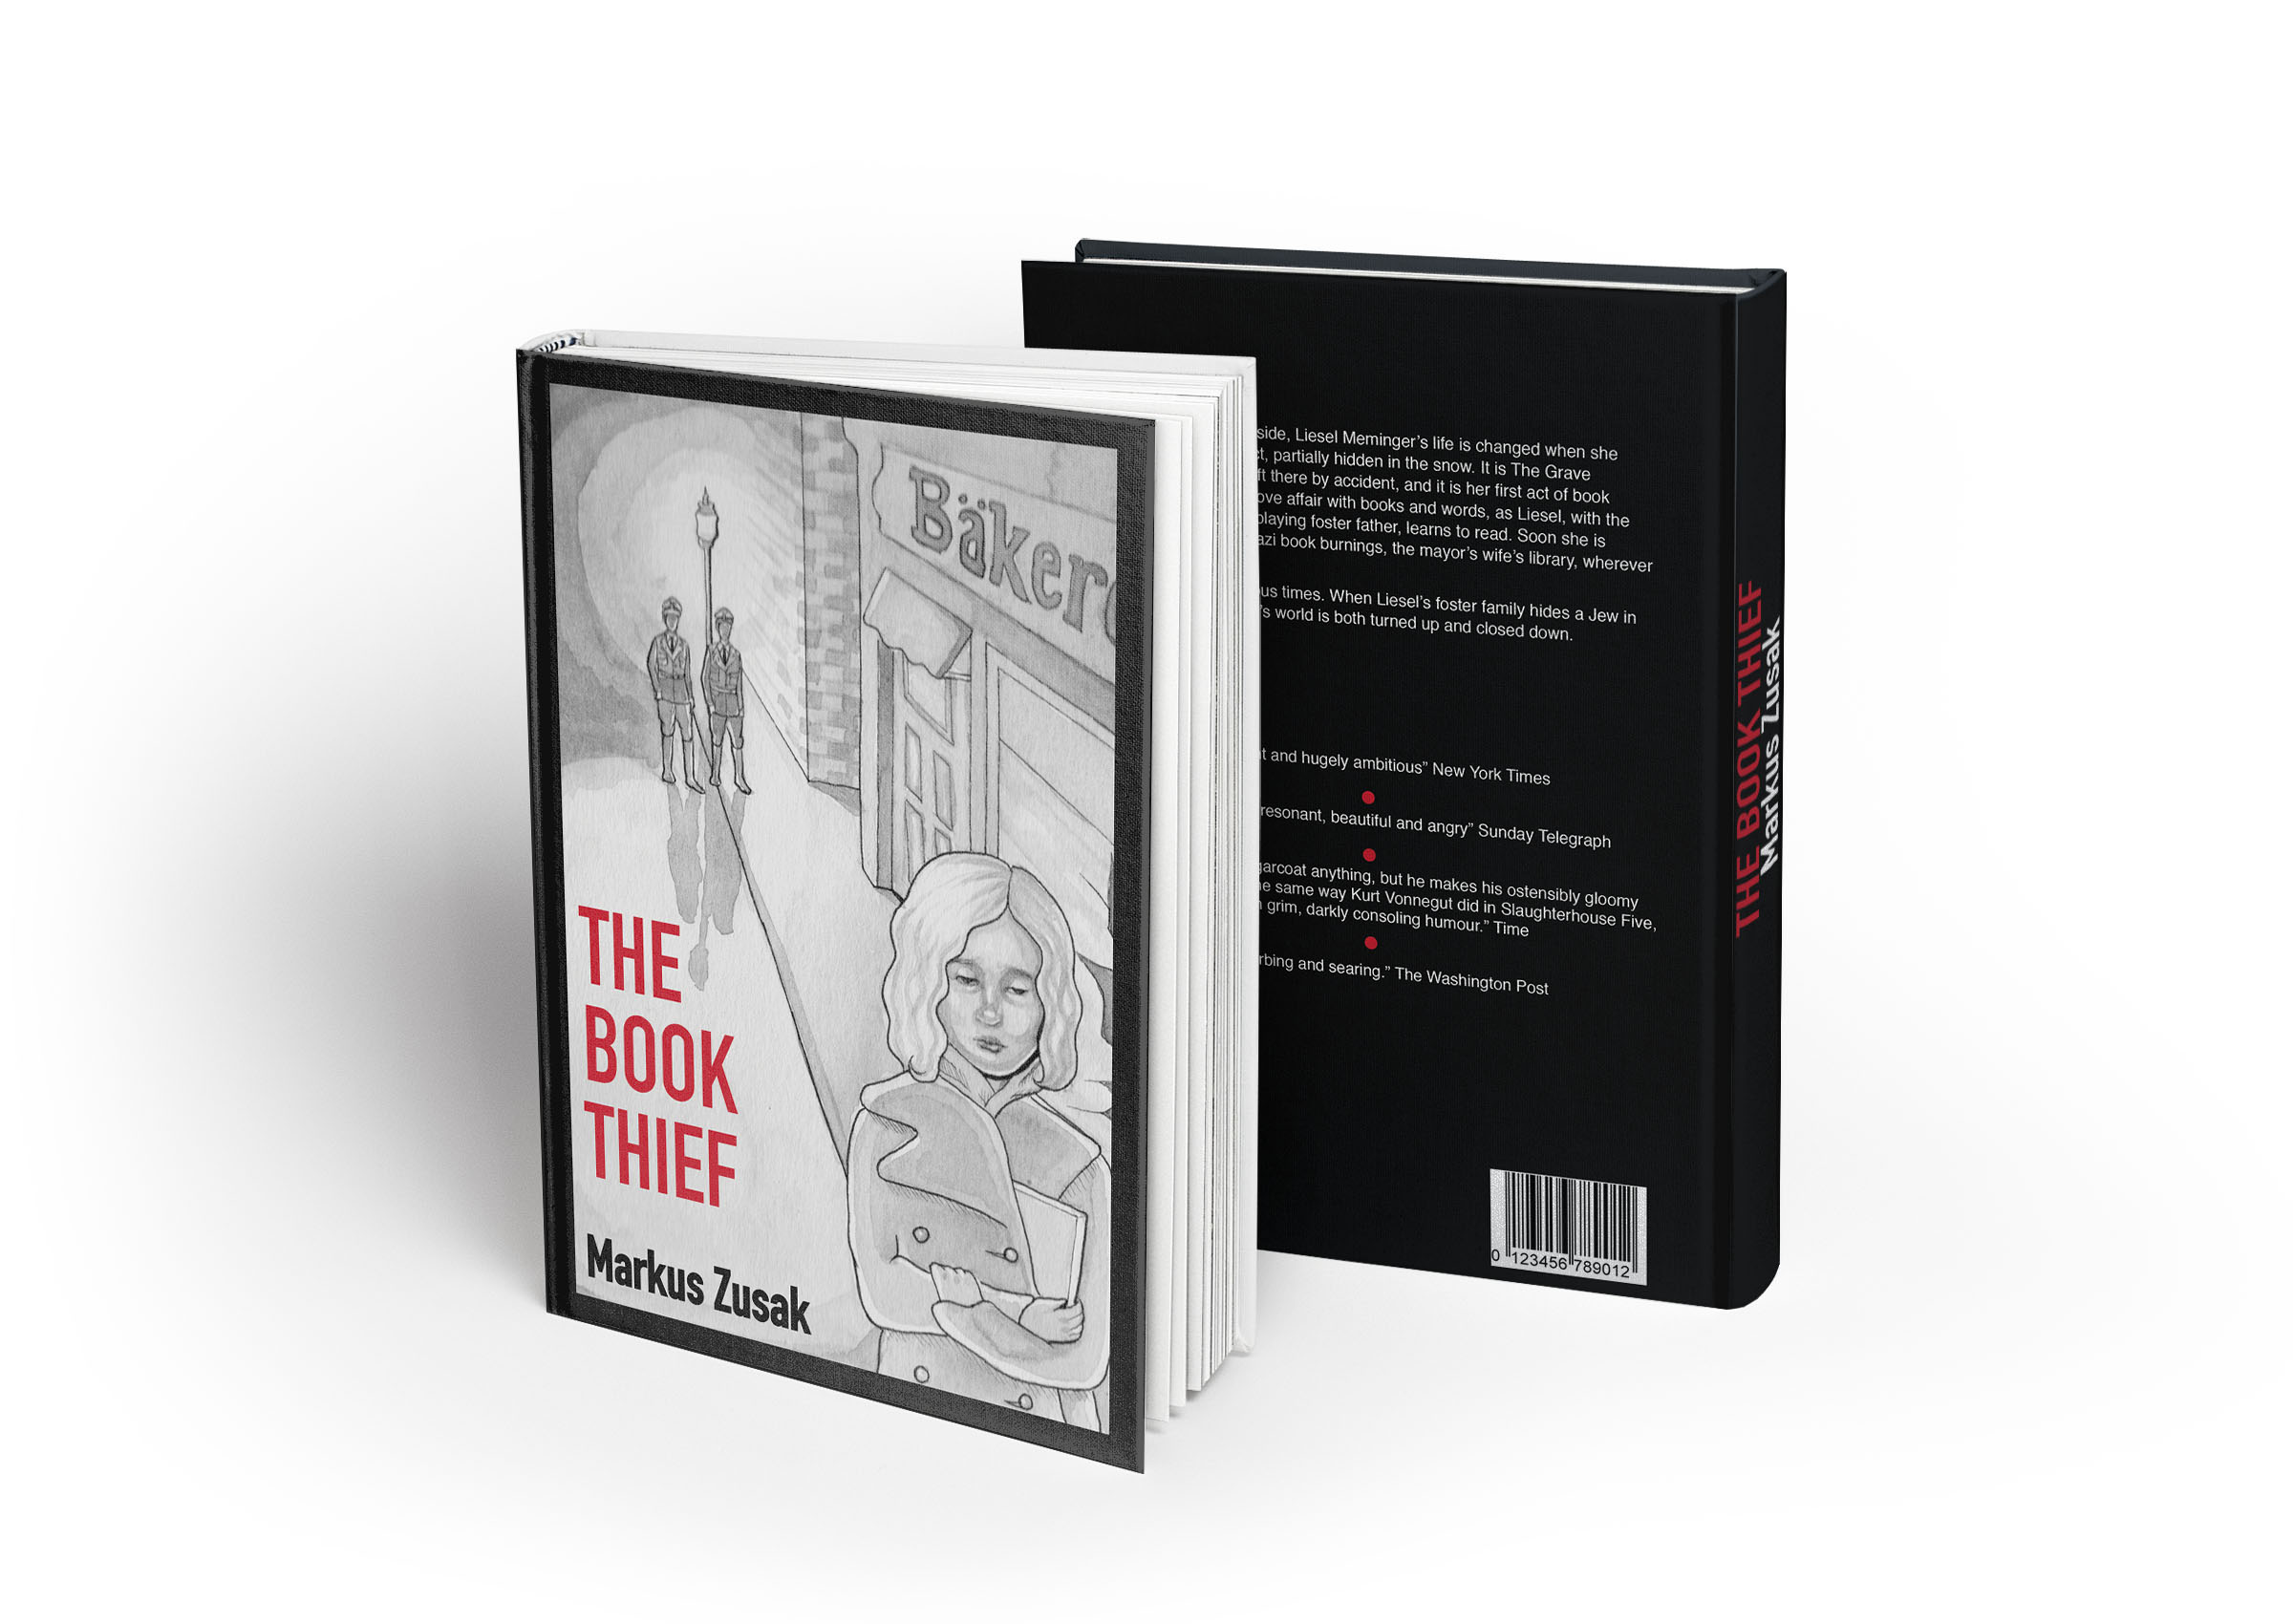 book cover design the book thief on